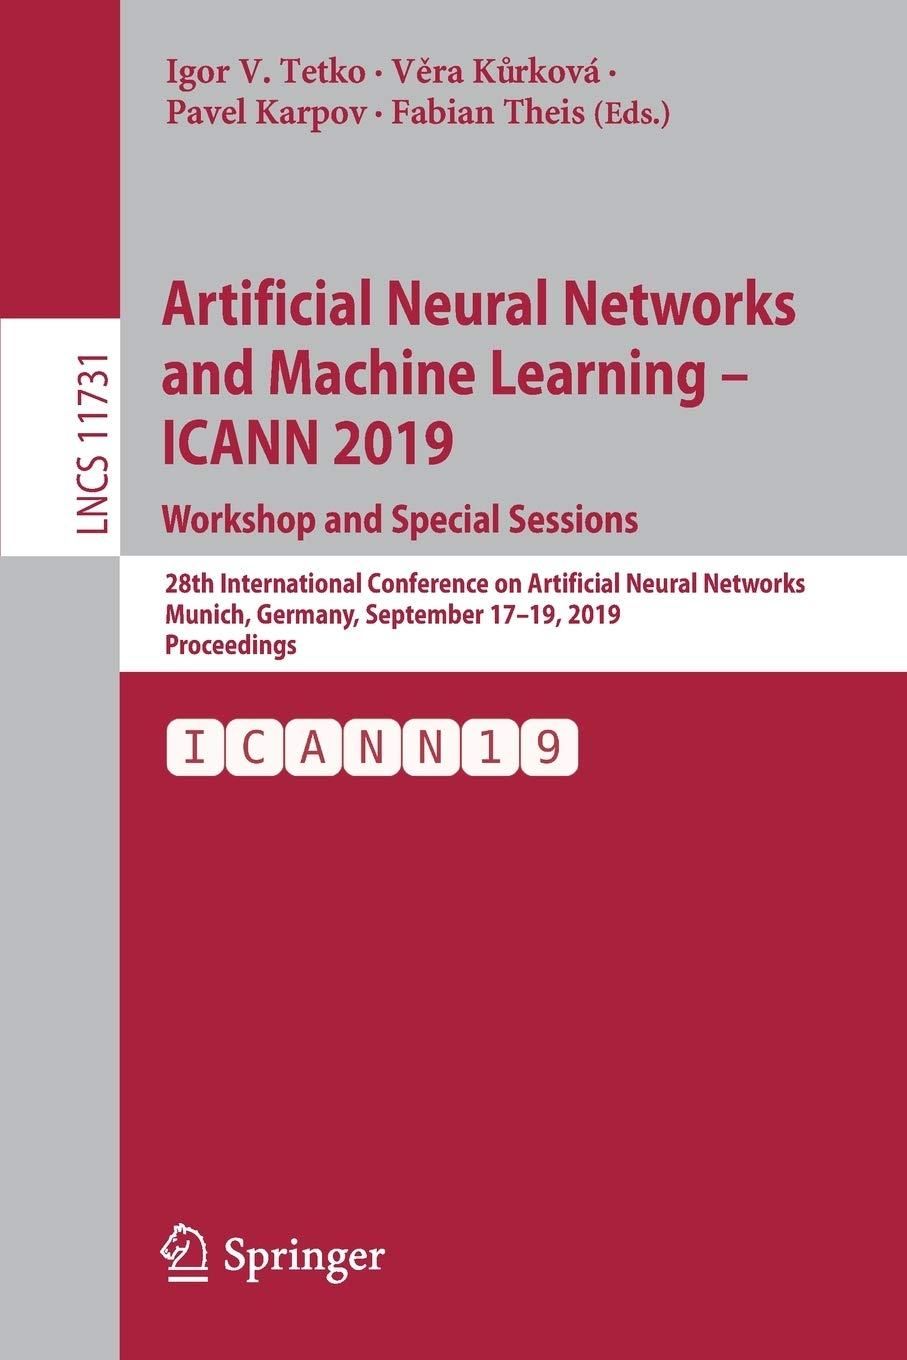 Artificial Neural Networks and Machine Learning